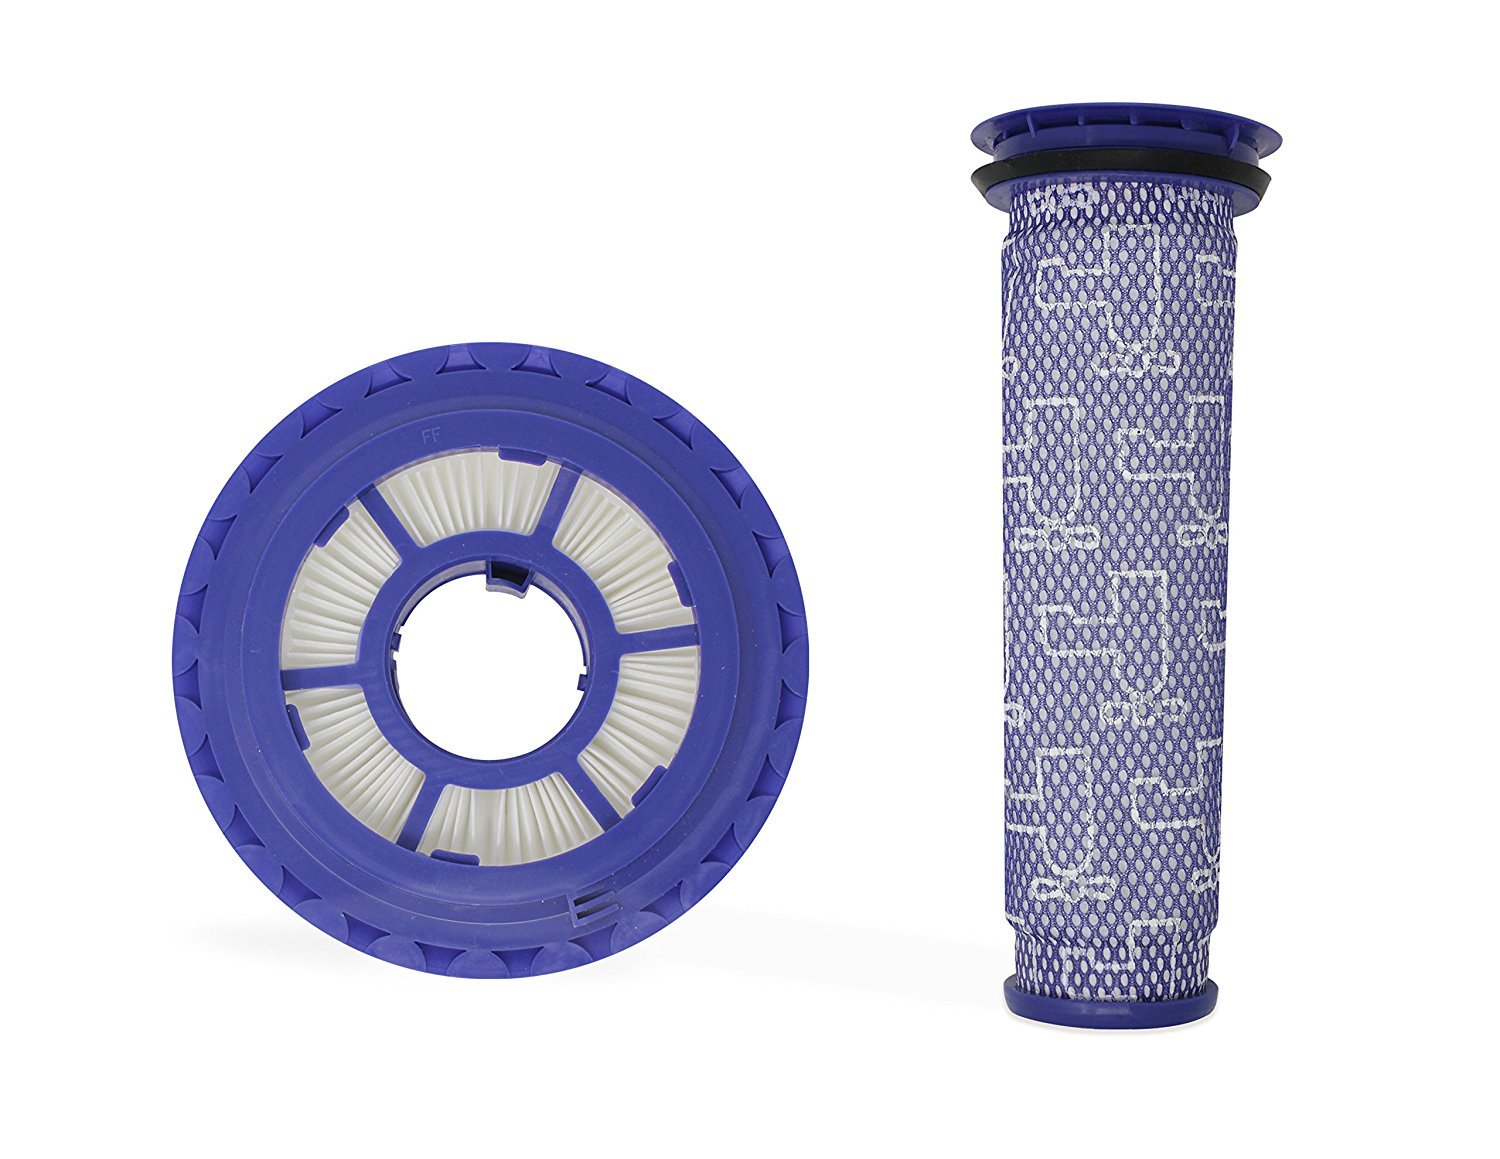 Replacement for Dyson DC41, DC65, DC66 HEPA Post Filter & Washable Pre Filter Kit Replaces Part # 920769-01 & 920640-01...